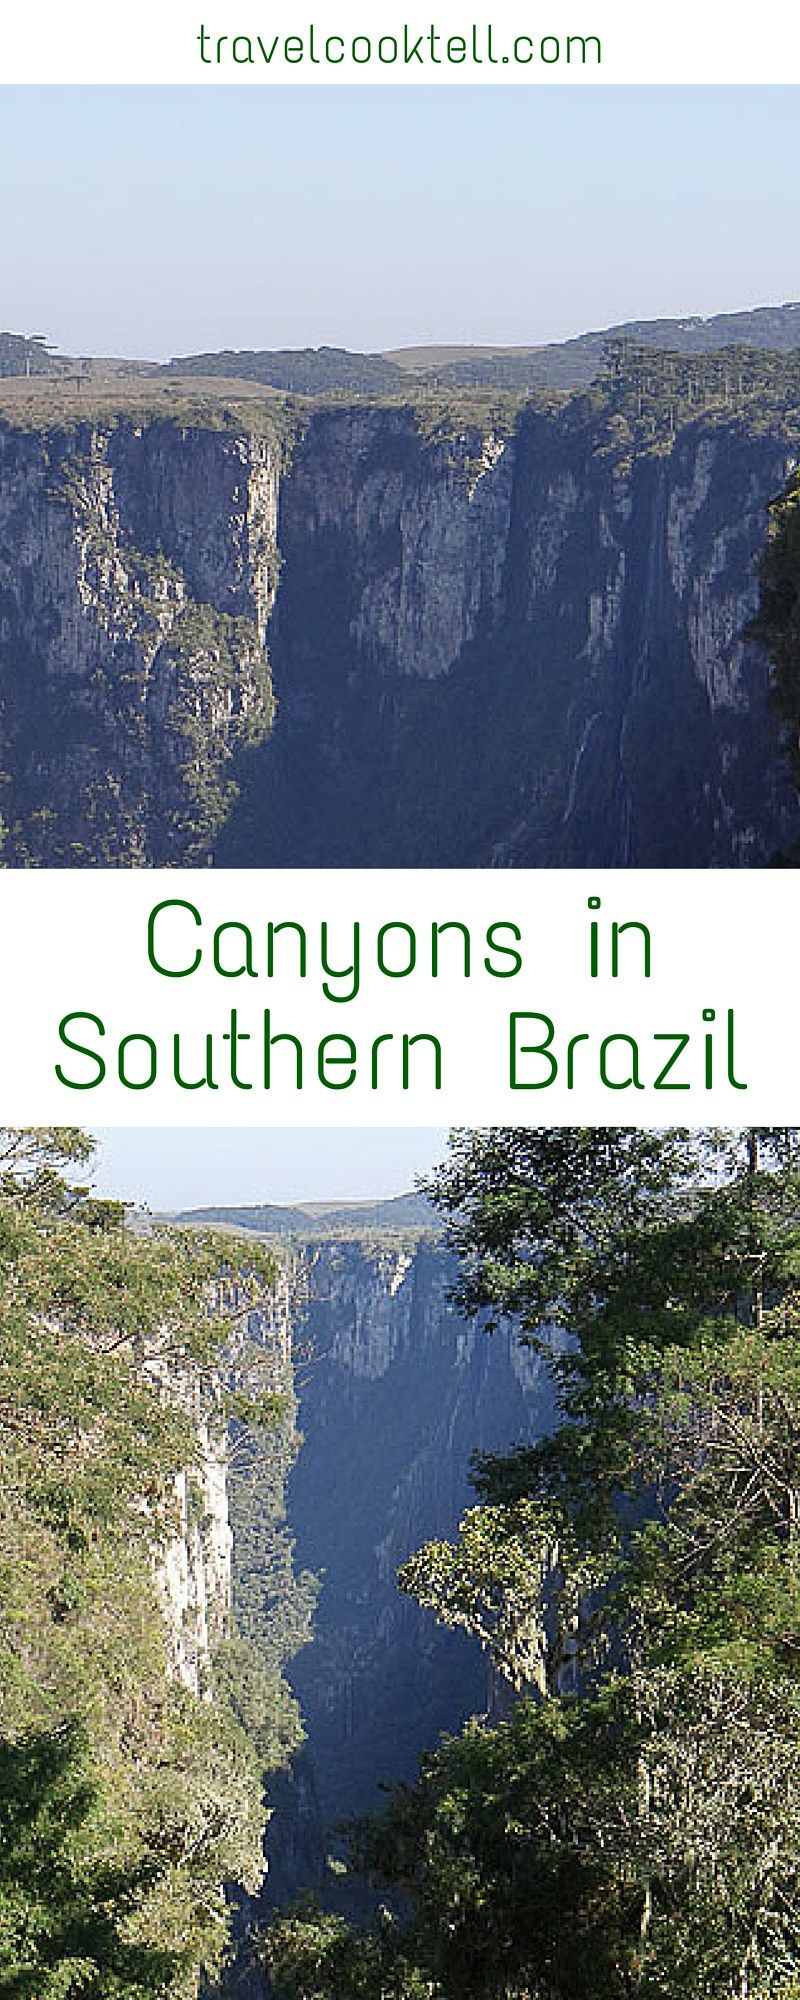 Canyons in Southern Brazil